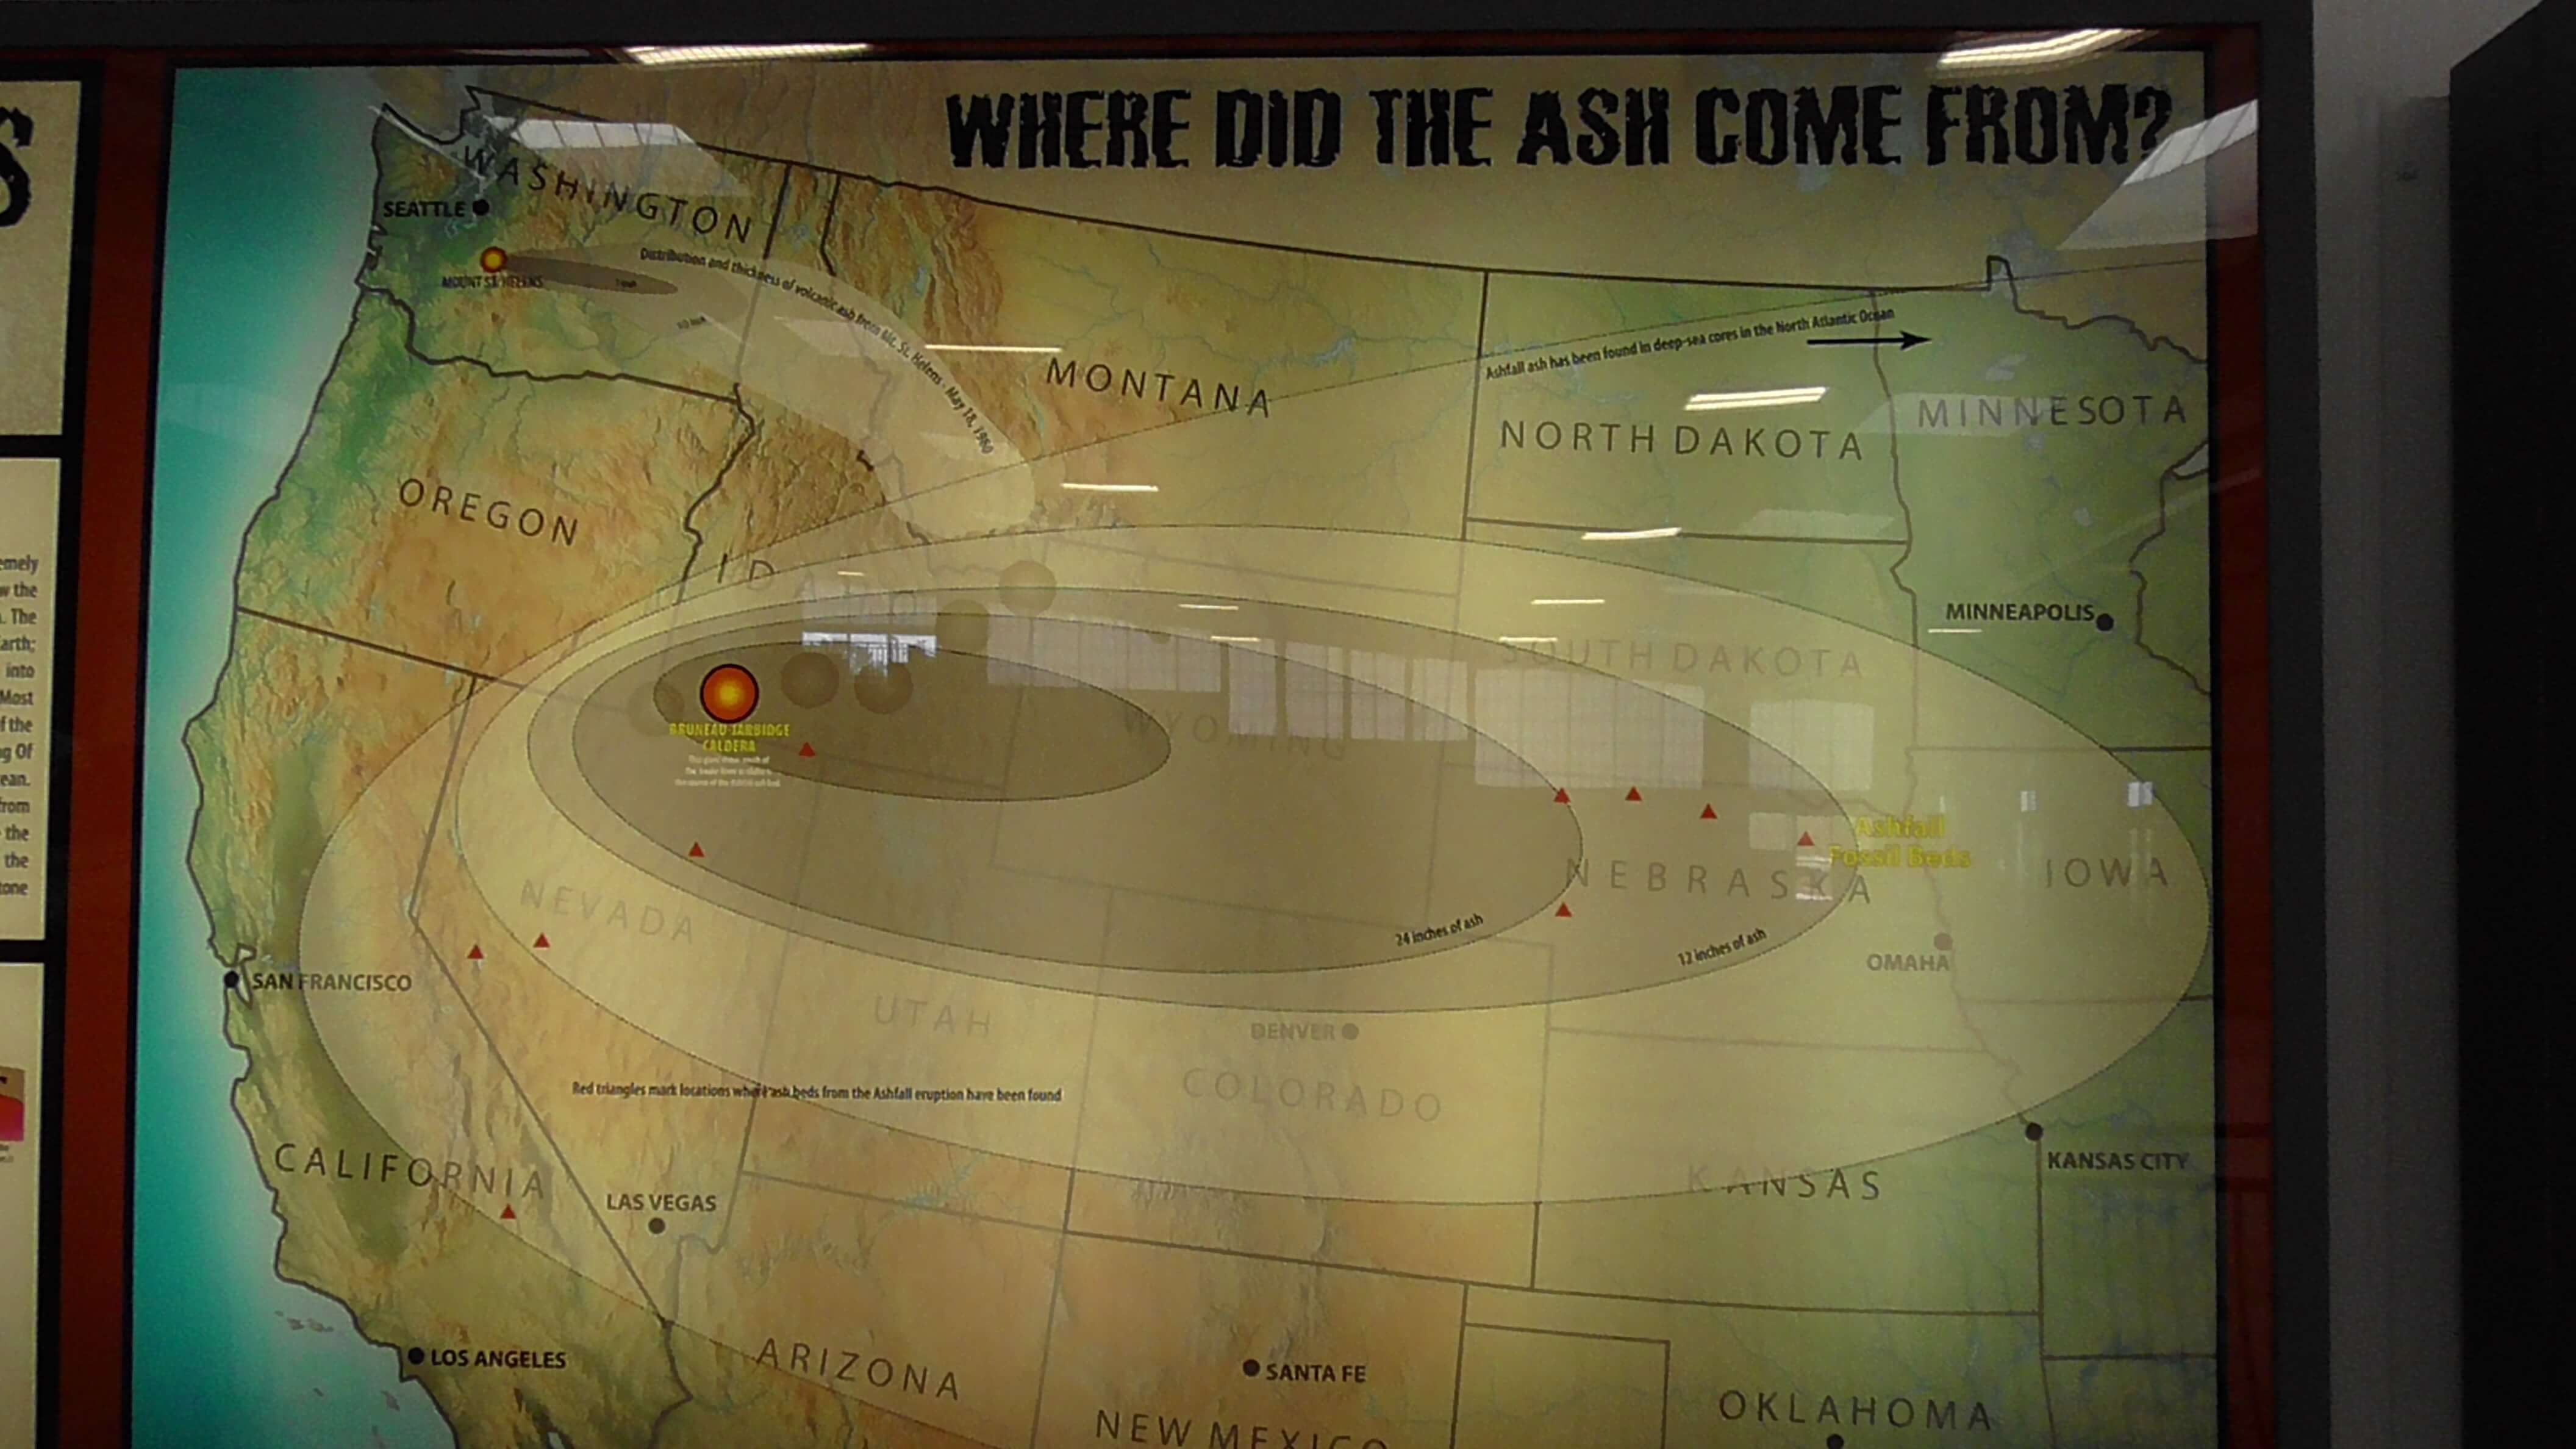 Map of ash fall from the eruption